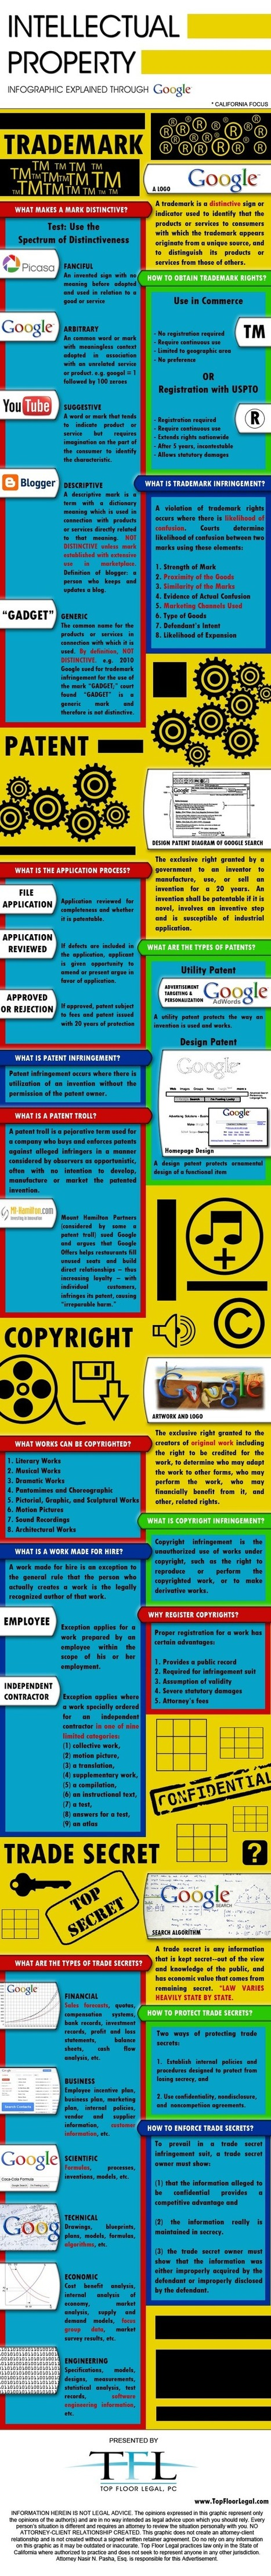 Intellectual Property Infographic Explained through Google | School Library Discoveries | Scoop.it